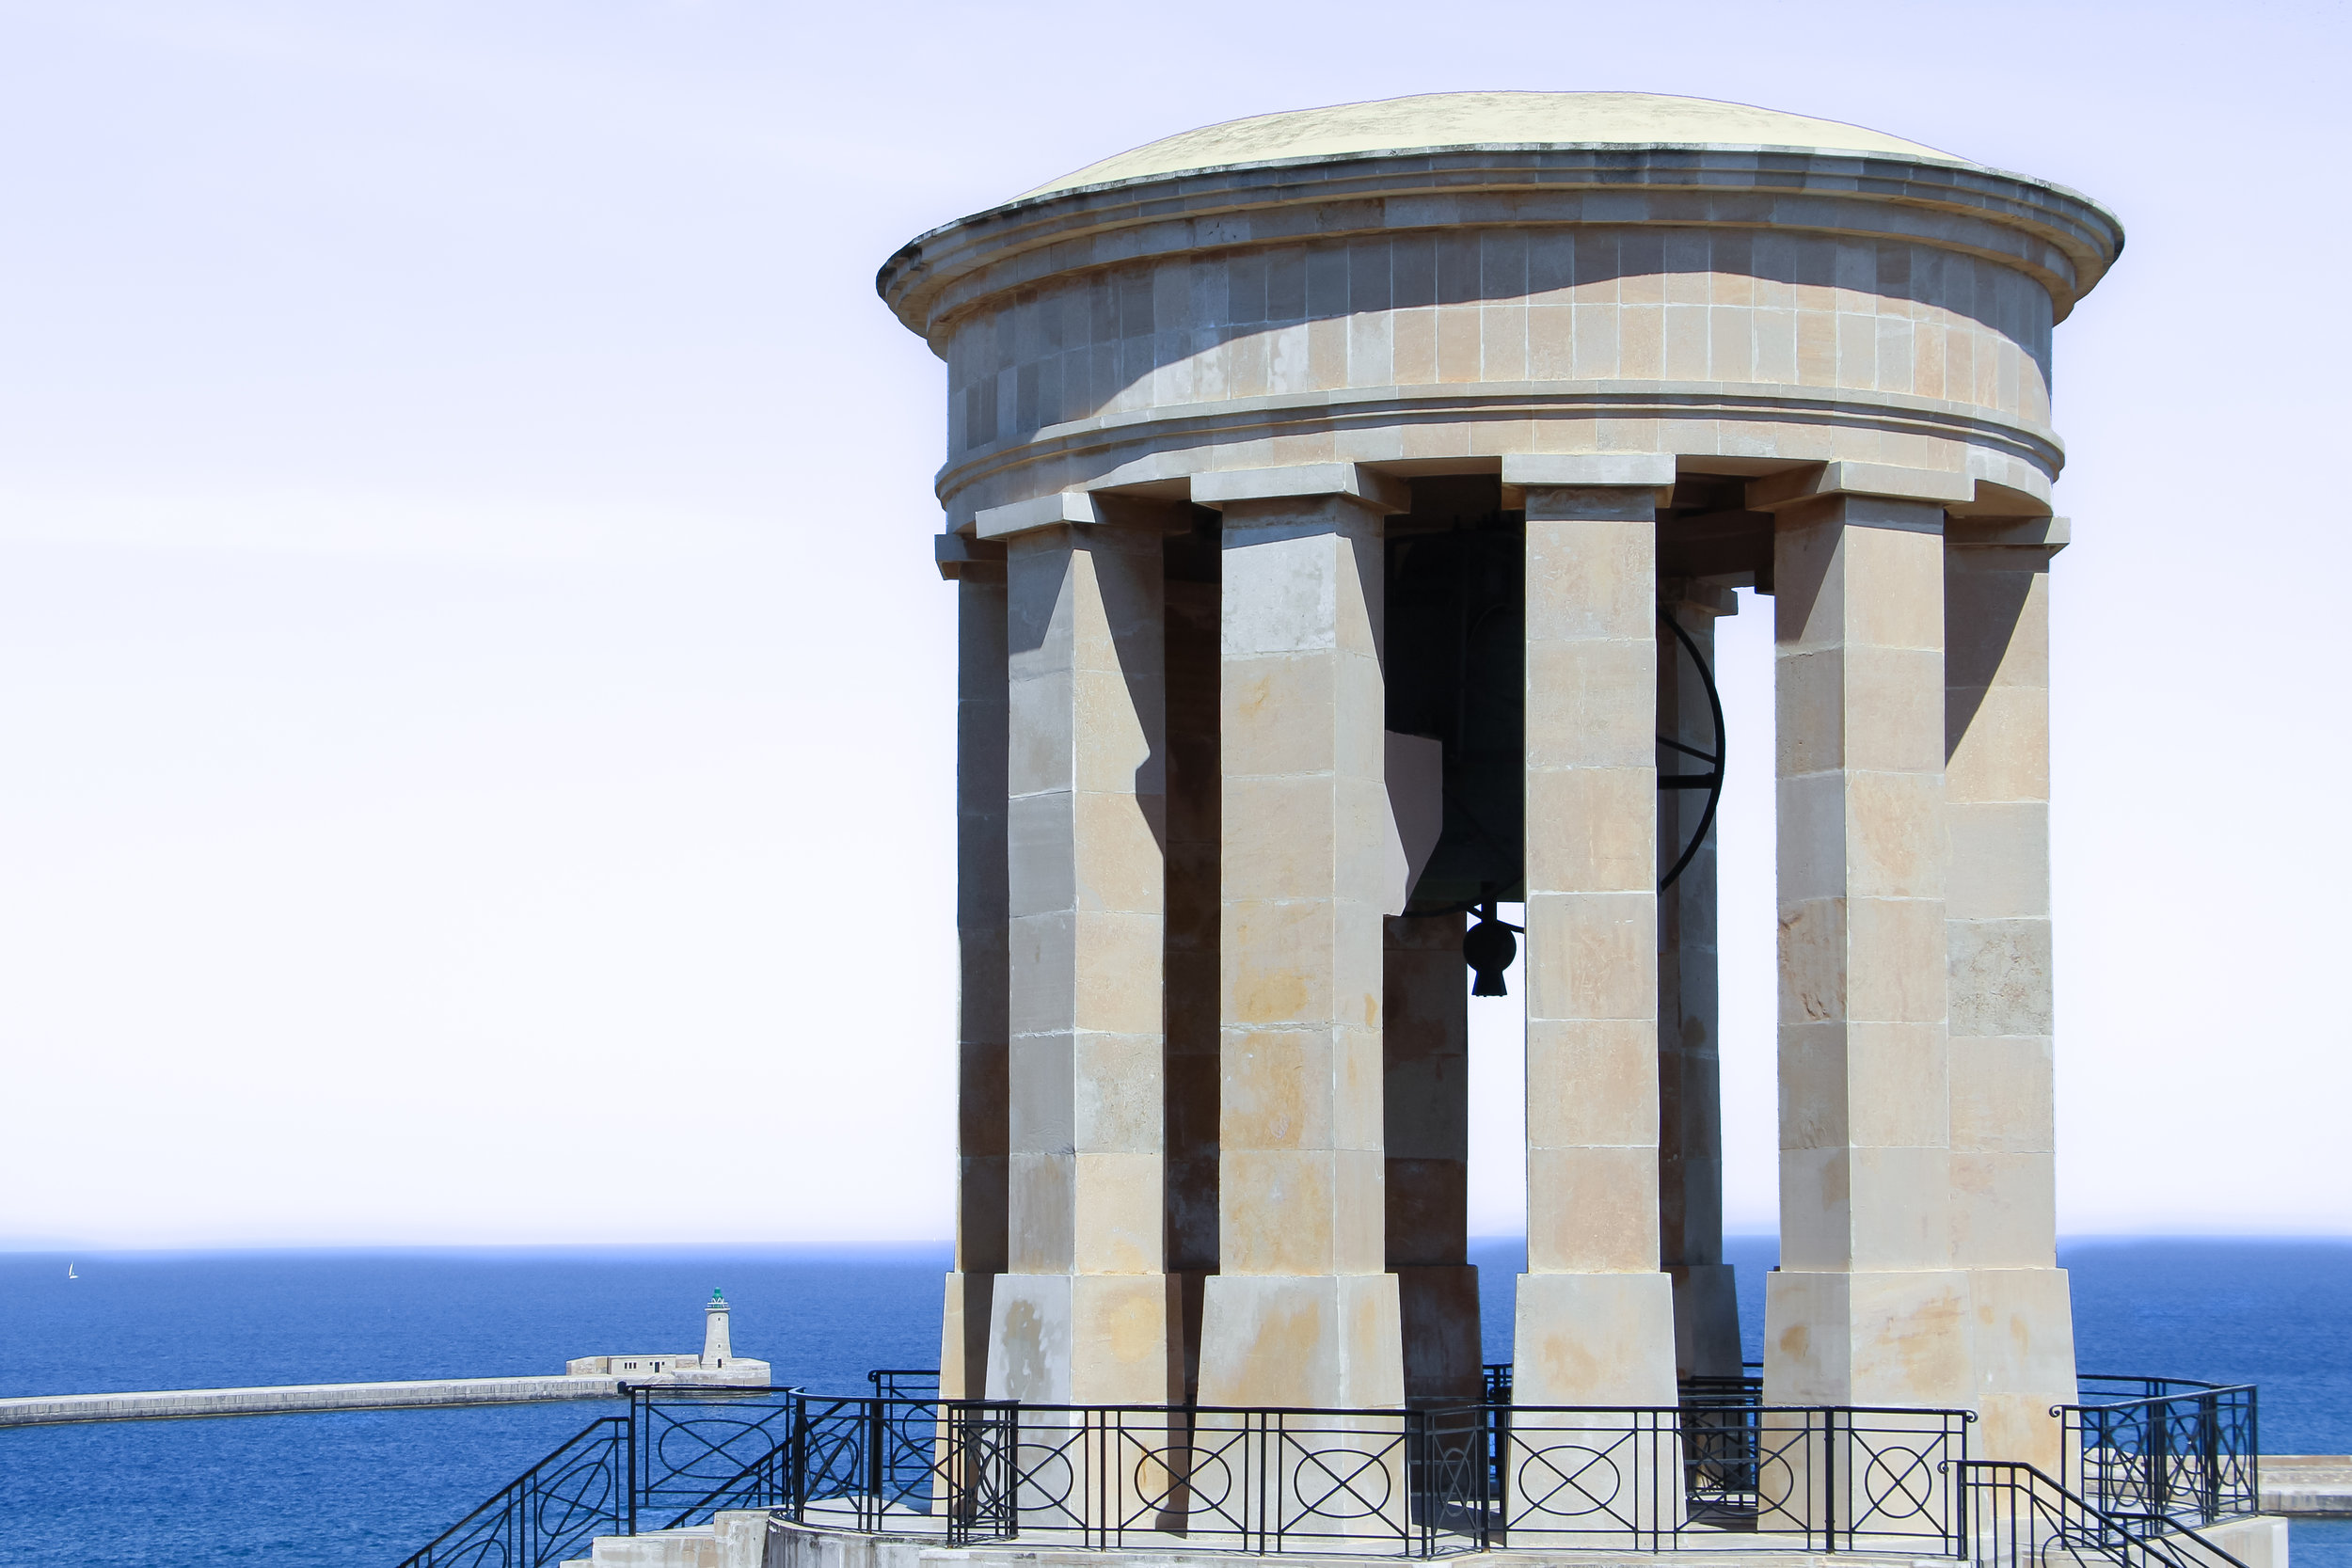 Siege Bell Monument | Grand Harbour Lighthouse | the Mediterranean Sea | Valletta | - Thinking About Appreciation For Quality In Malta | Malta, Europe | DoLessGetMoreDone.com | - Canon Minimal Travel Documentary Photography - search for liveability | Sustainability